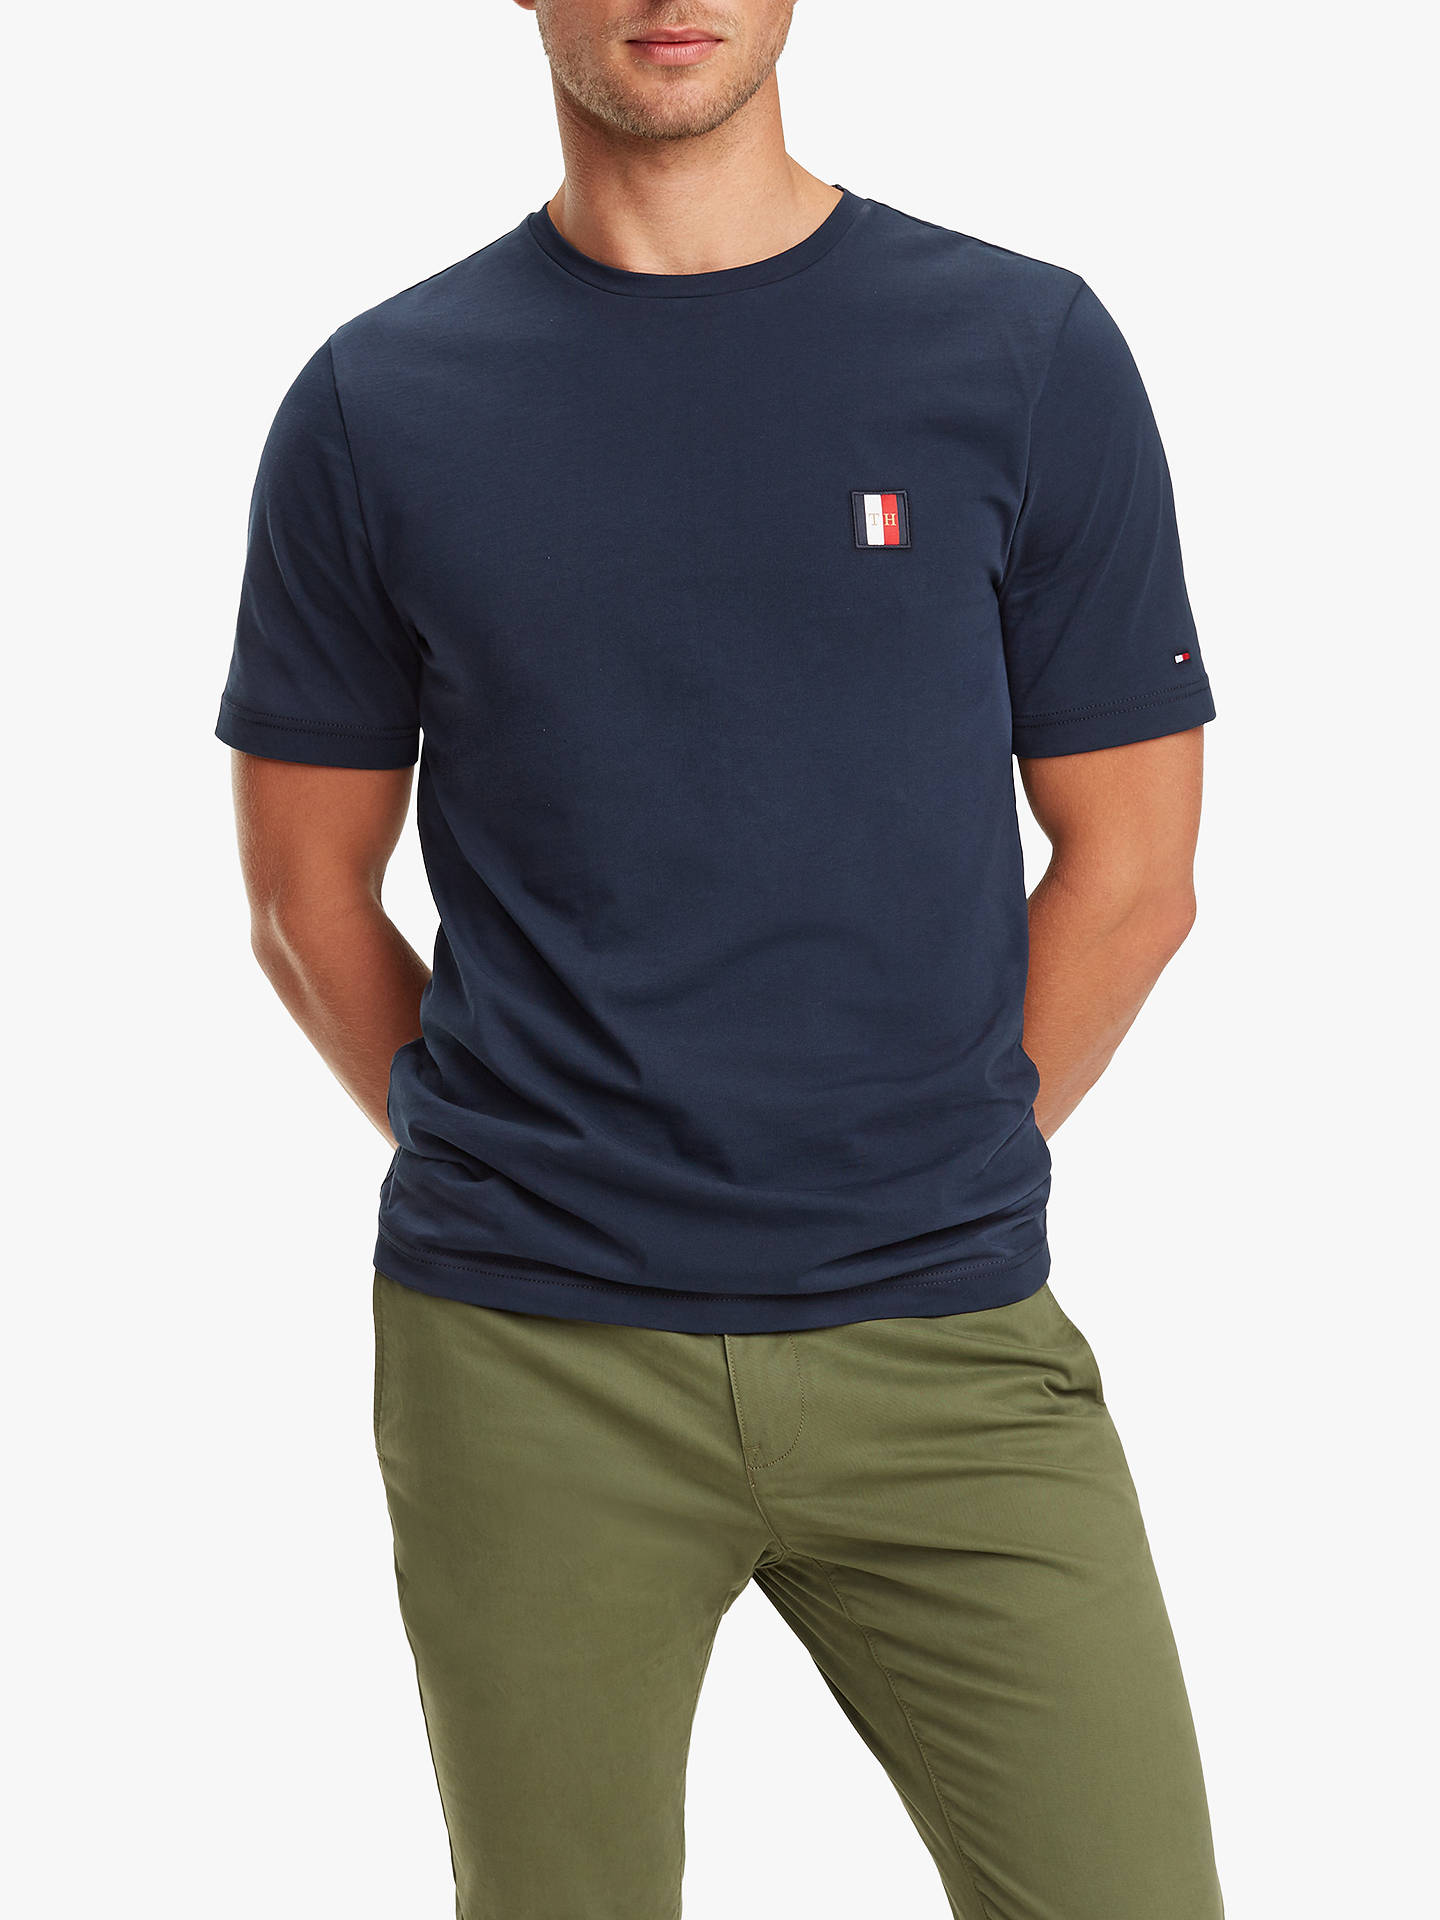 Tommy Hilfiger Icon Woven Label T Shirt at John Lewis & Partners